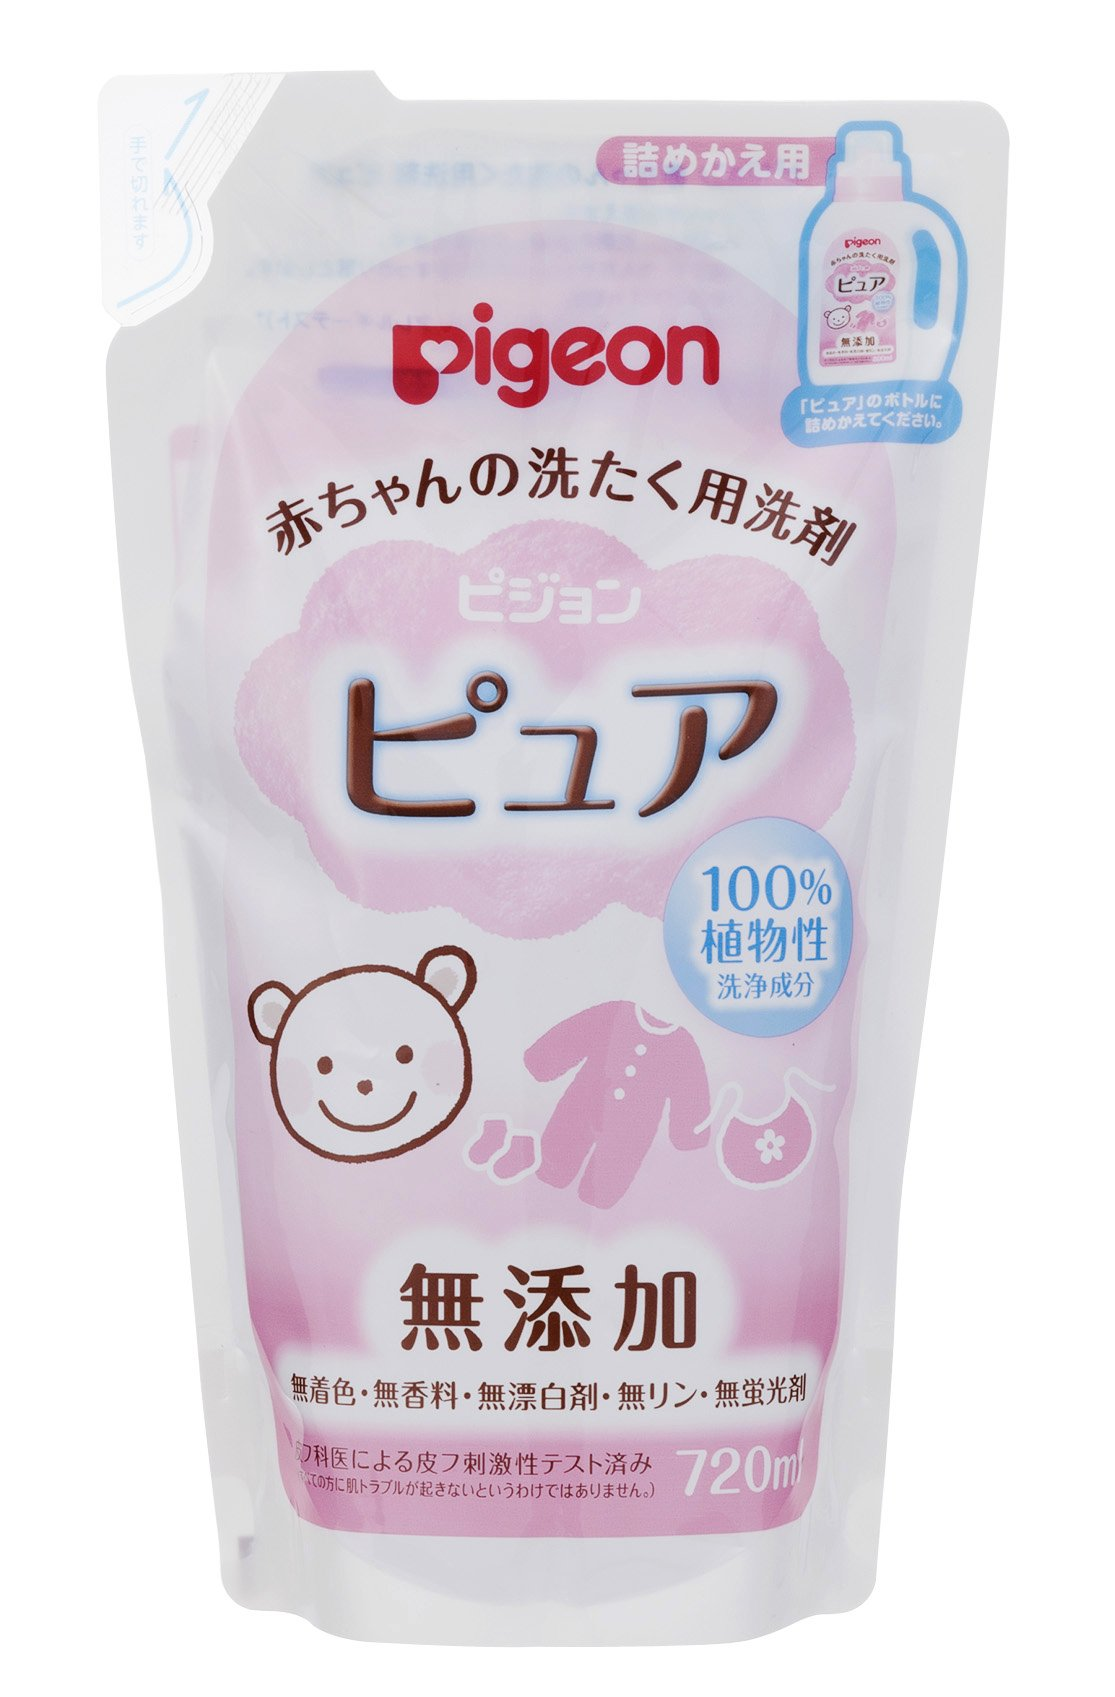 Japan Health and Personal - 720ml for changing laundry detergent Pure stuffed Pigeon baby *AF27*